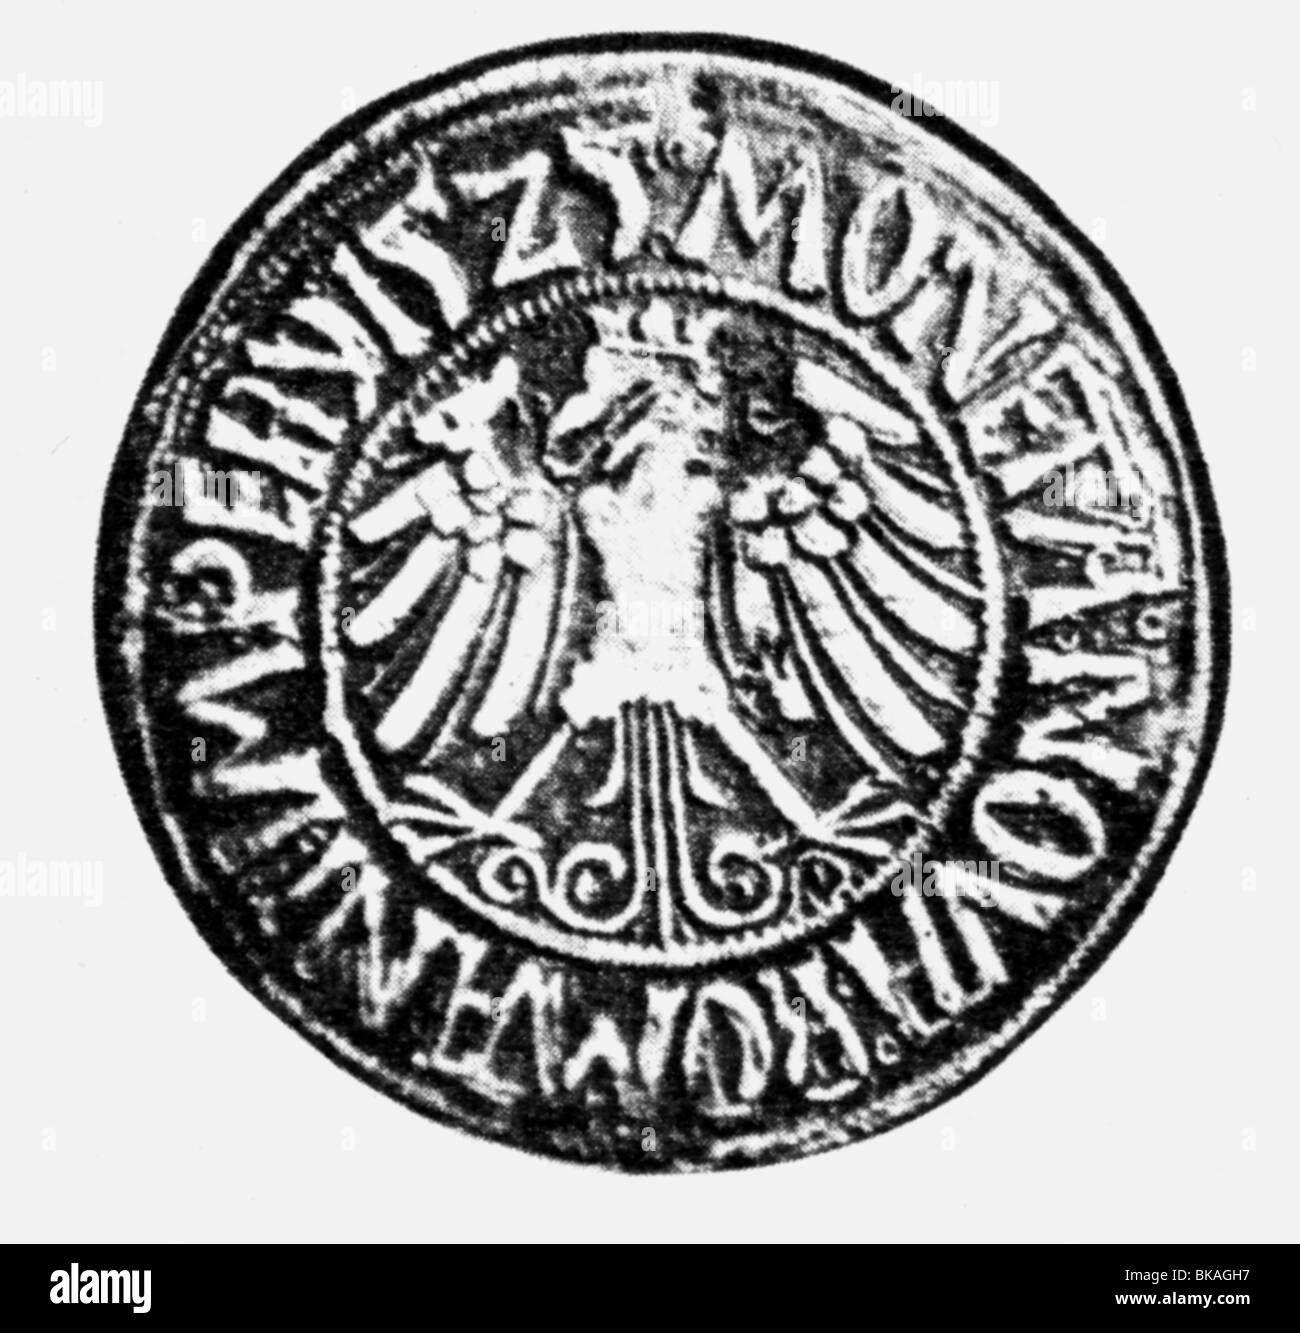 events, German Peasants' War 1524 - 1526, groschen from the time of the Peasants' War, minted in Muehlhausen, - Stock Image